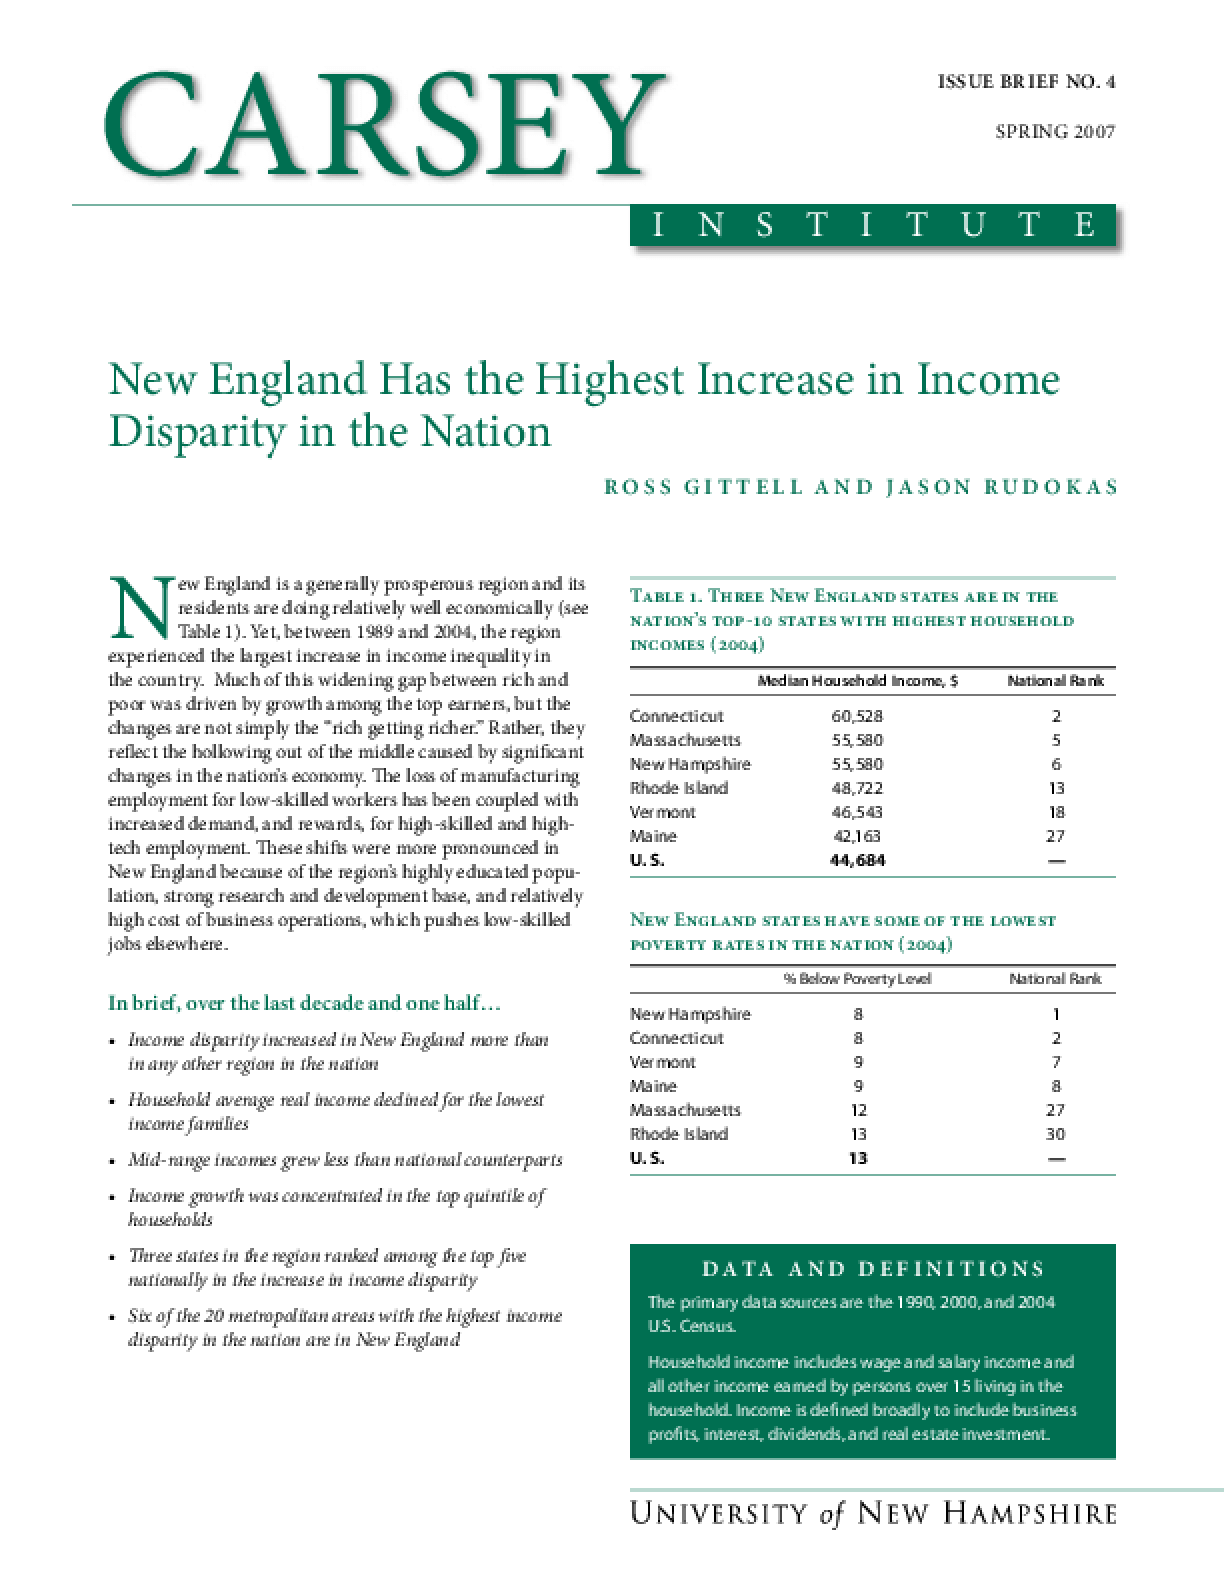 New England Has the Highest Increase in Income Disparity in the Nation